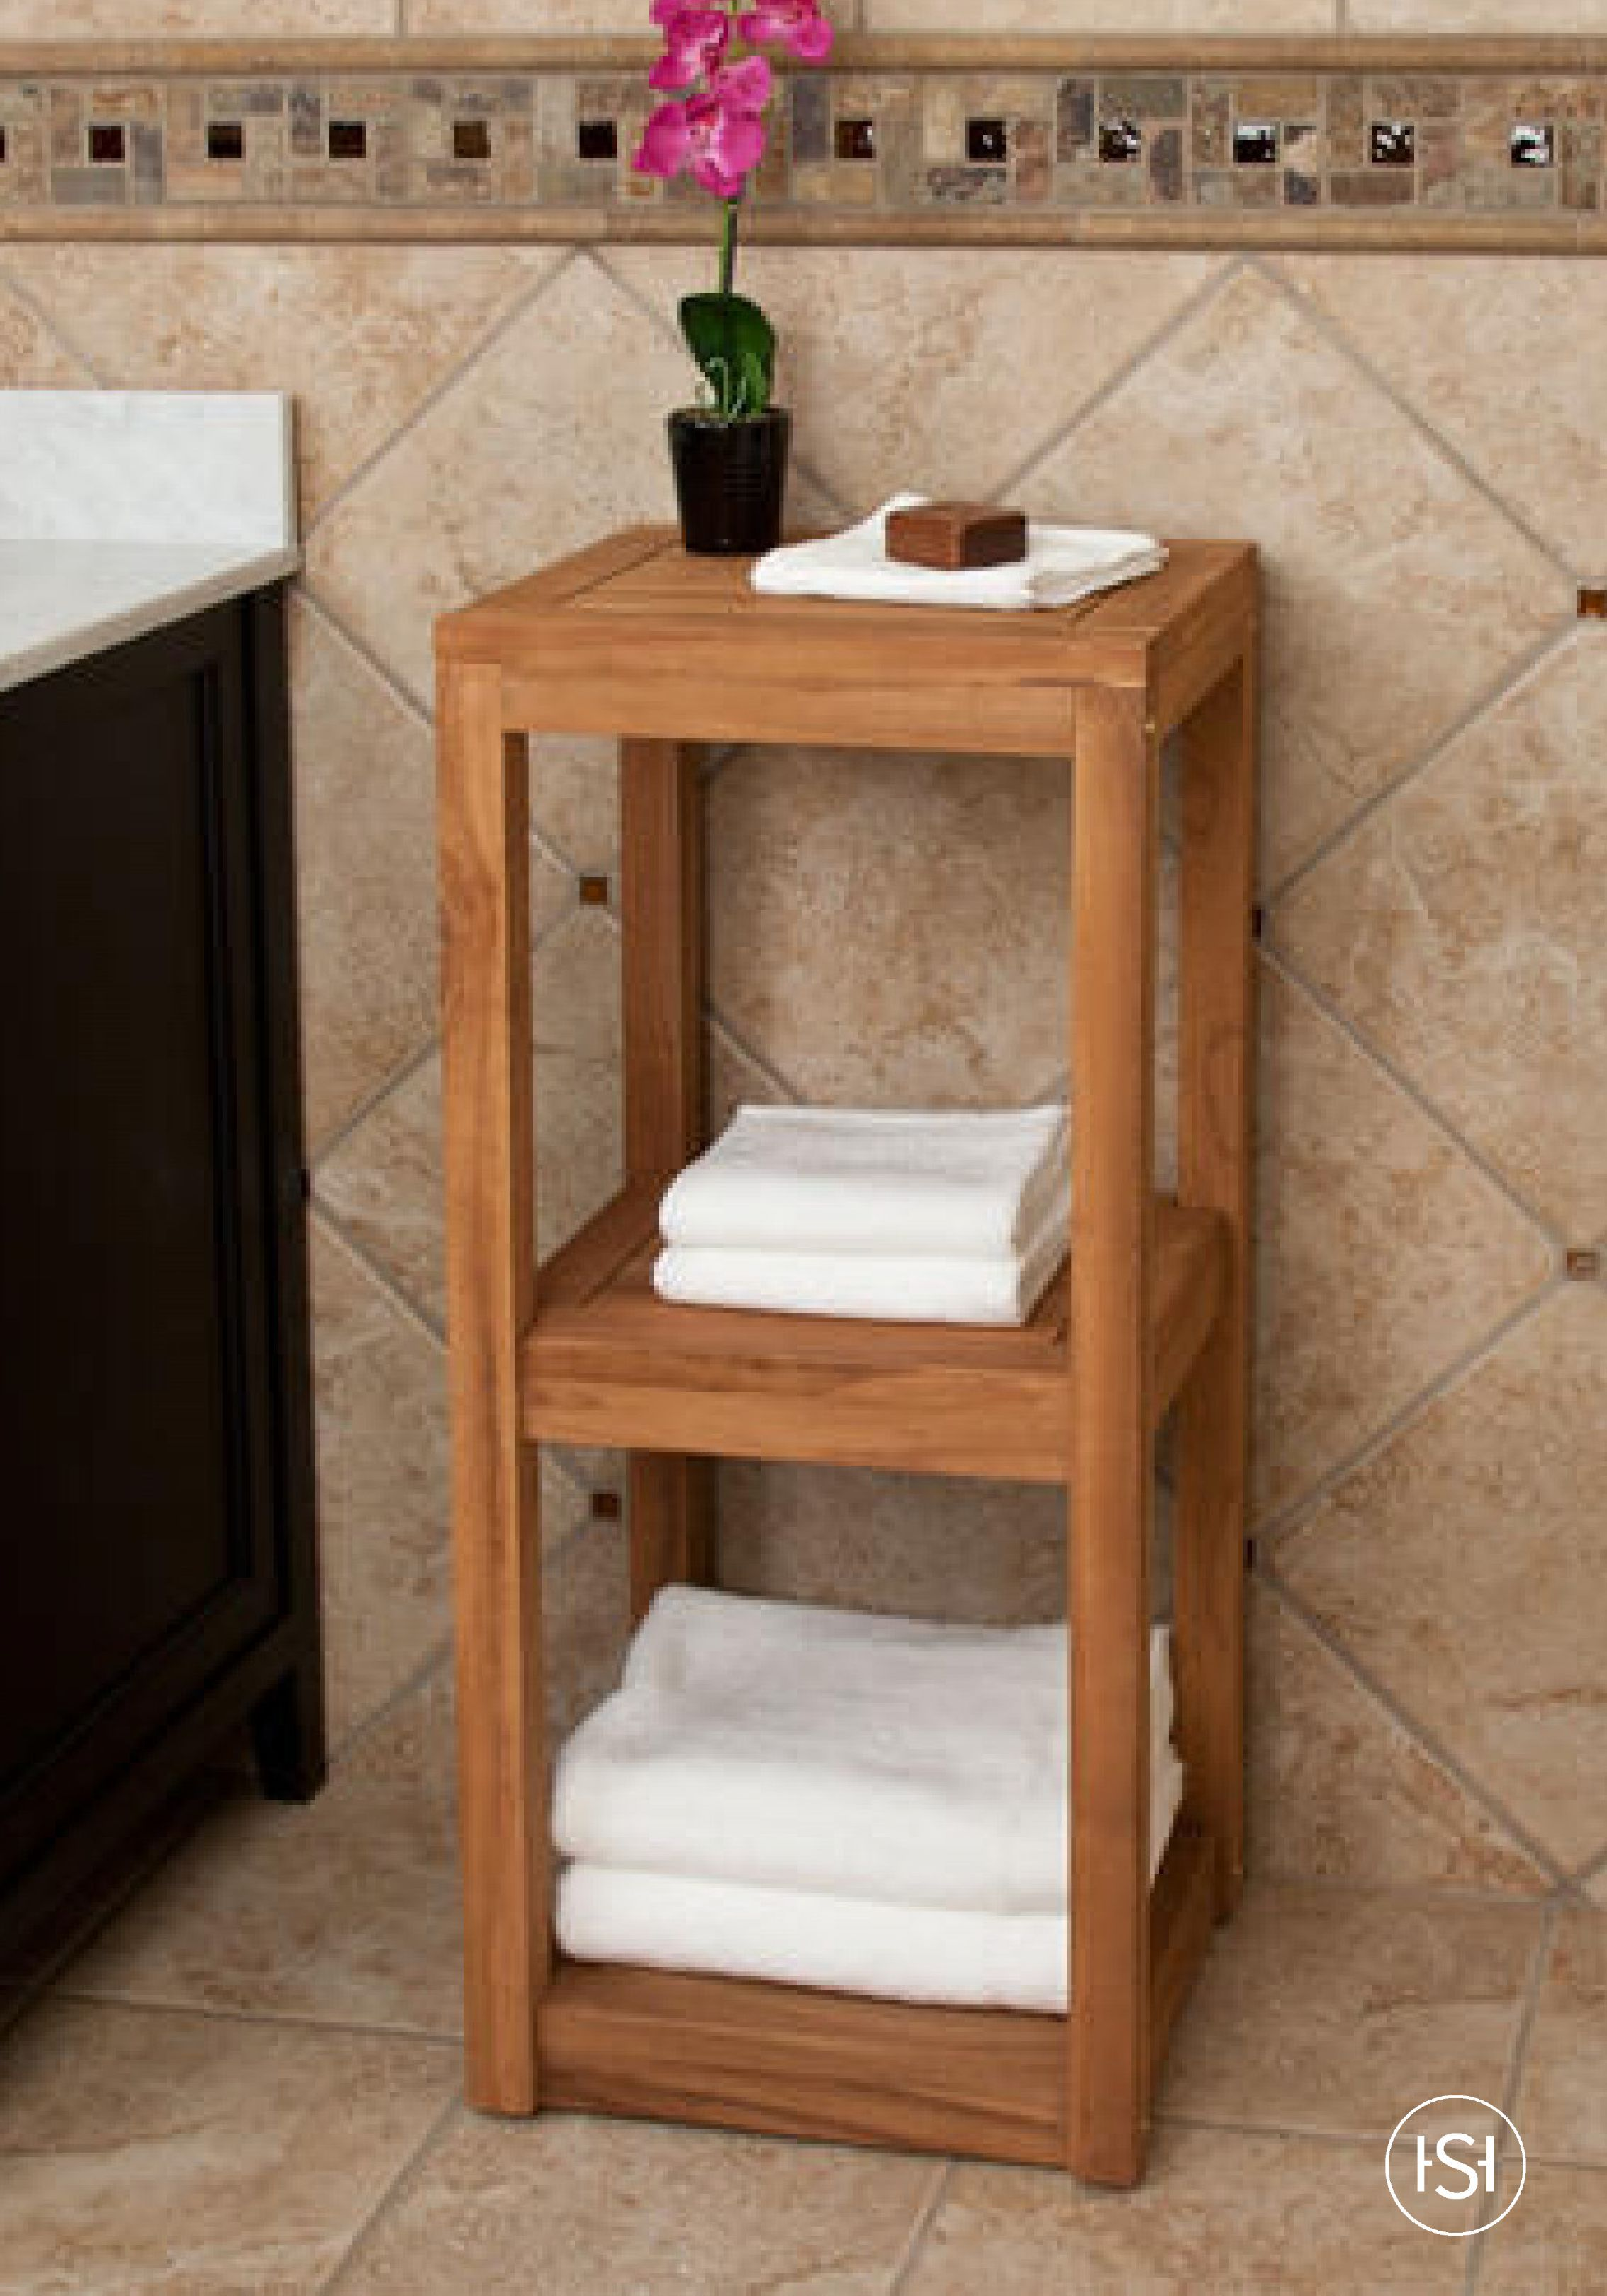 This Attractive Three Tier Teak Wood Towel Shelf Is Perfect For